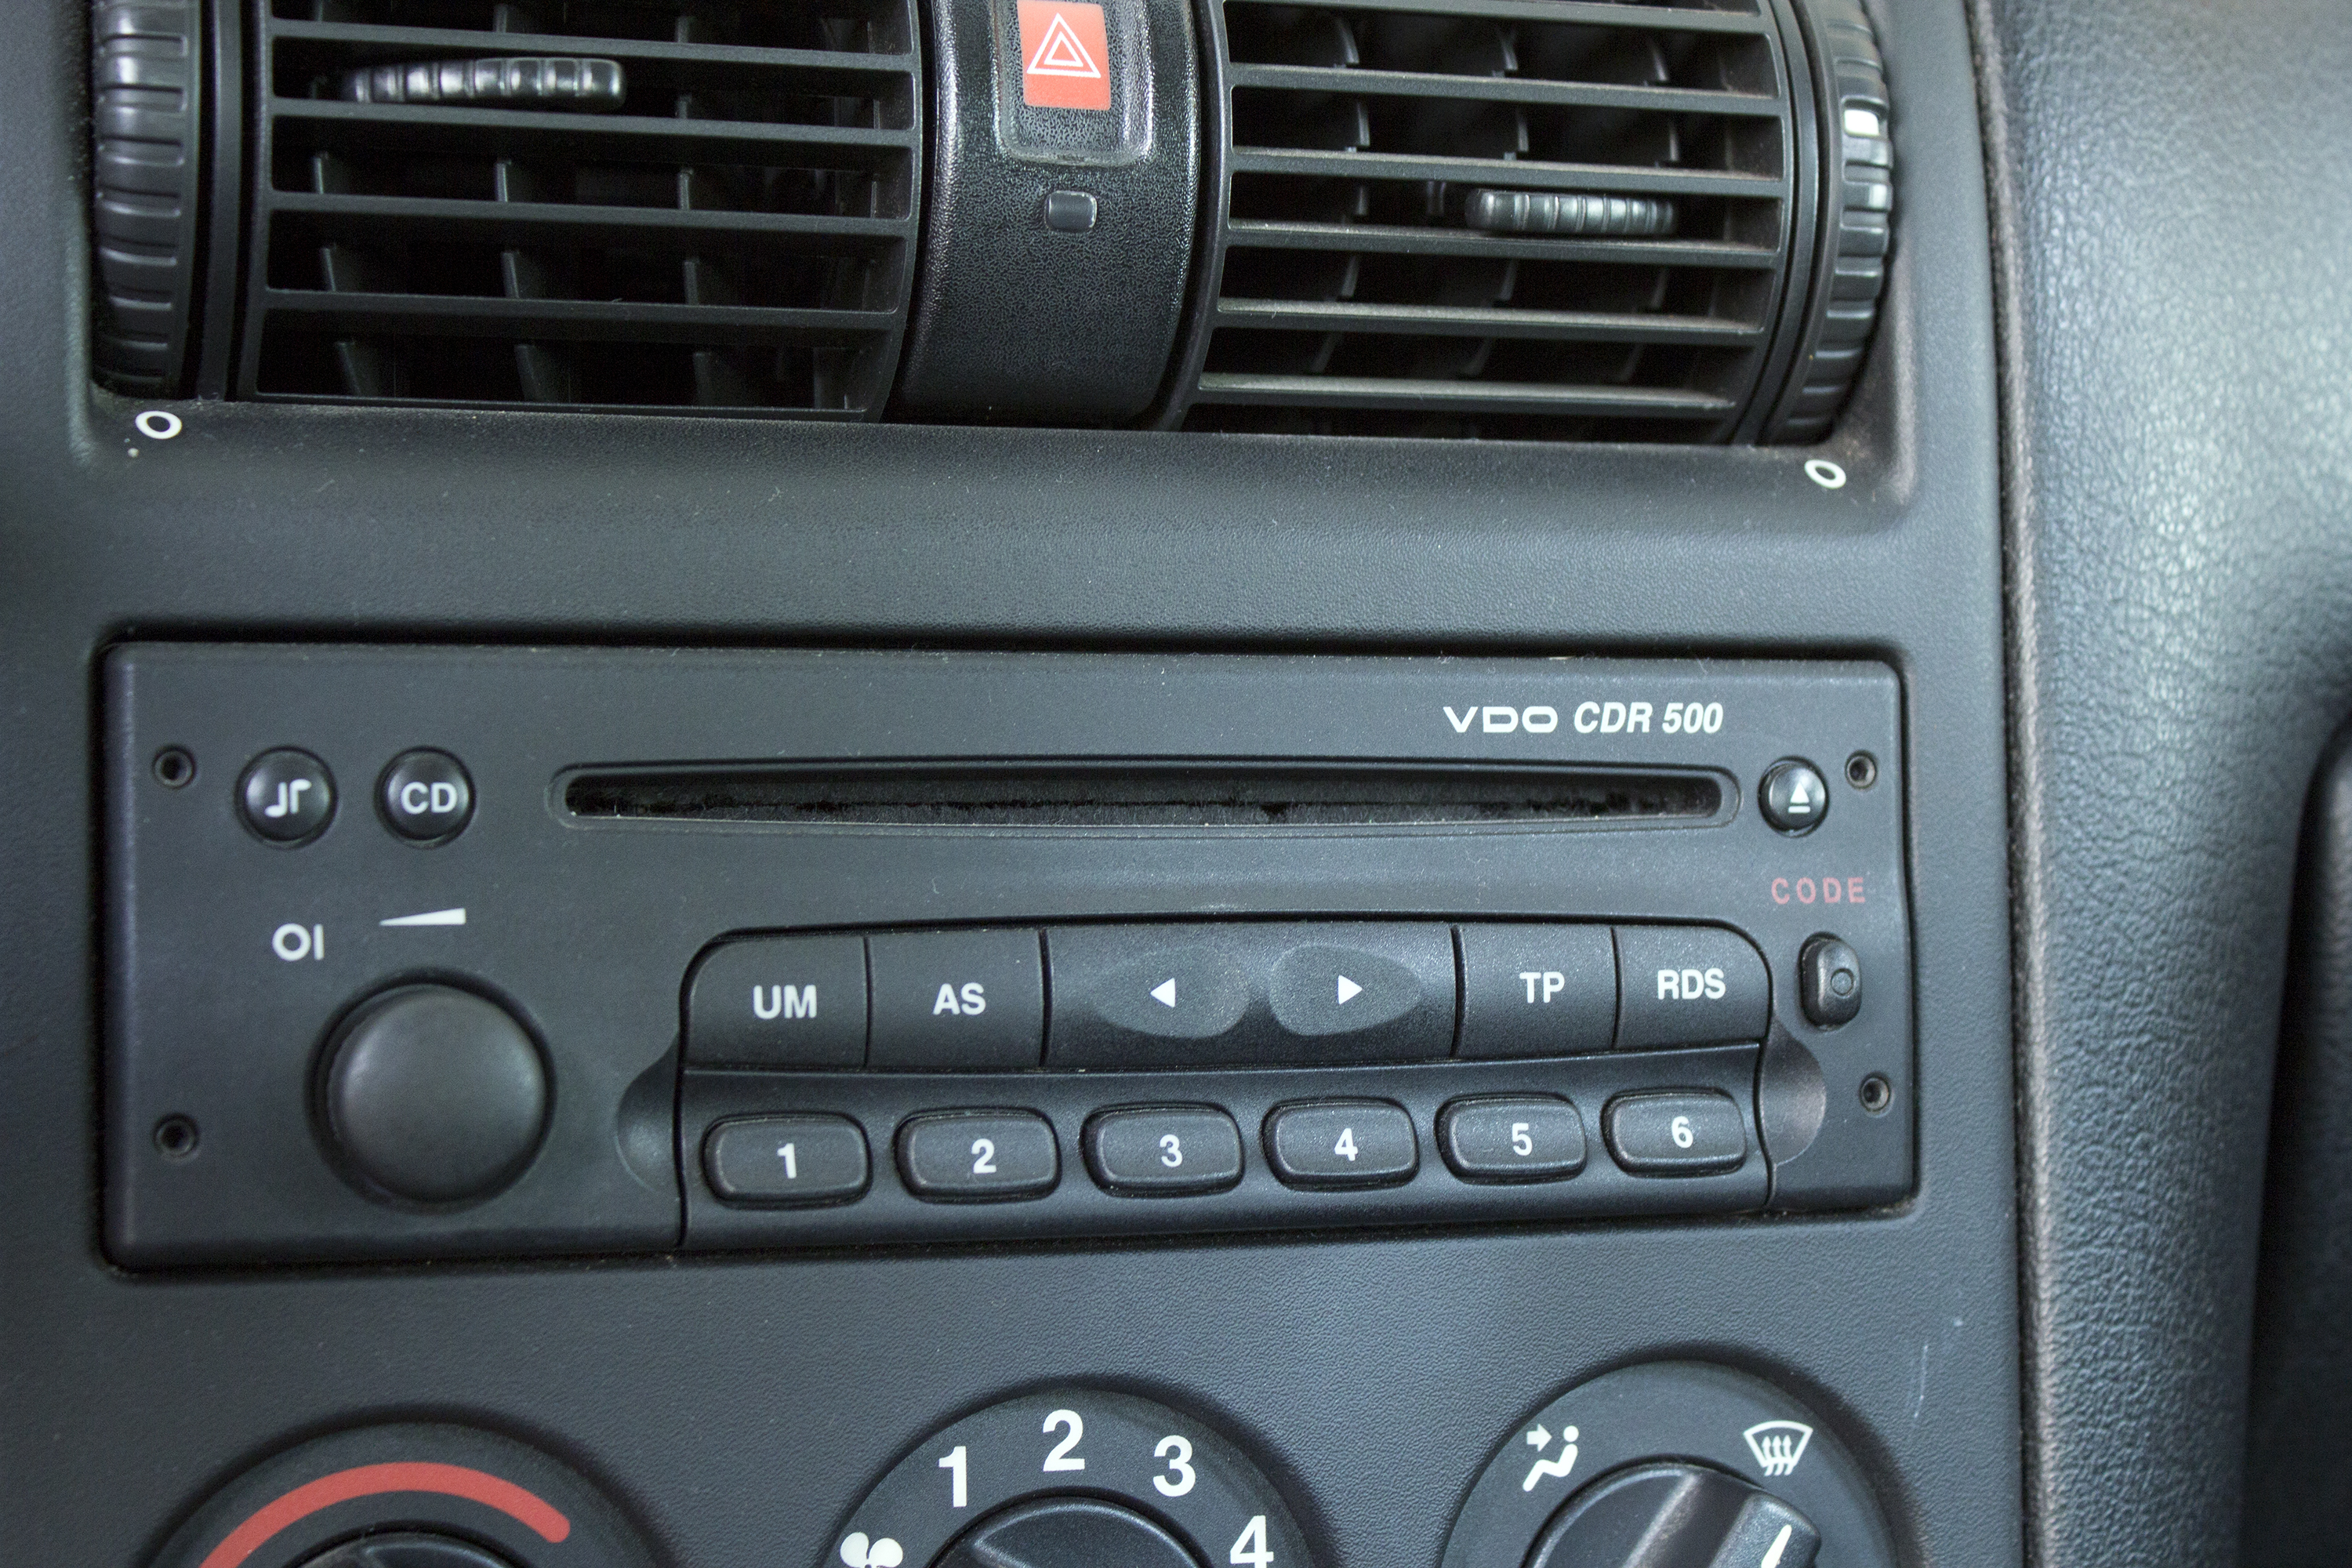 How To Troubleshoot A Car Stereo That Will Not Power It Still Runs Can Fuse Box Go Bad